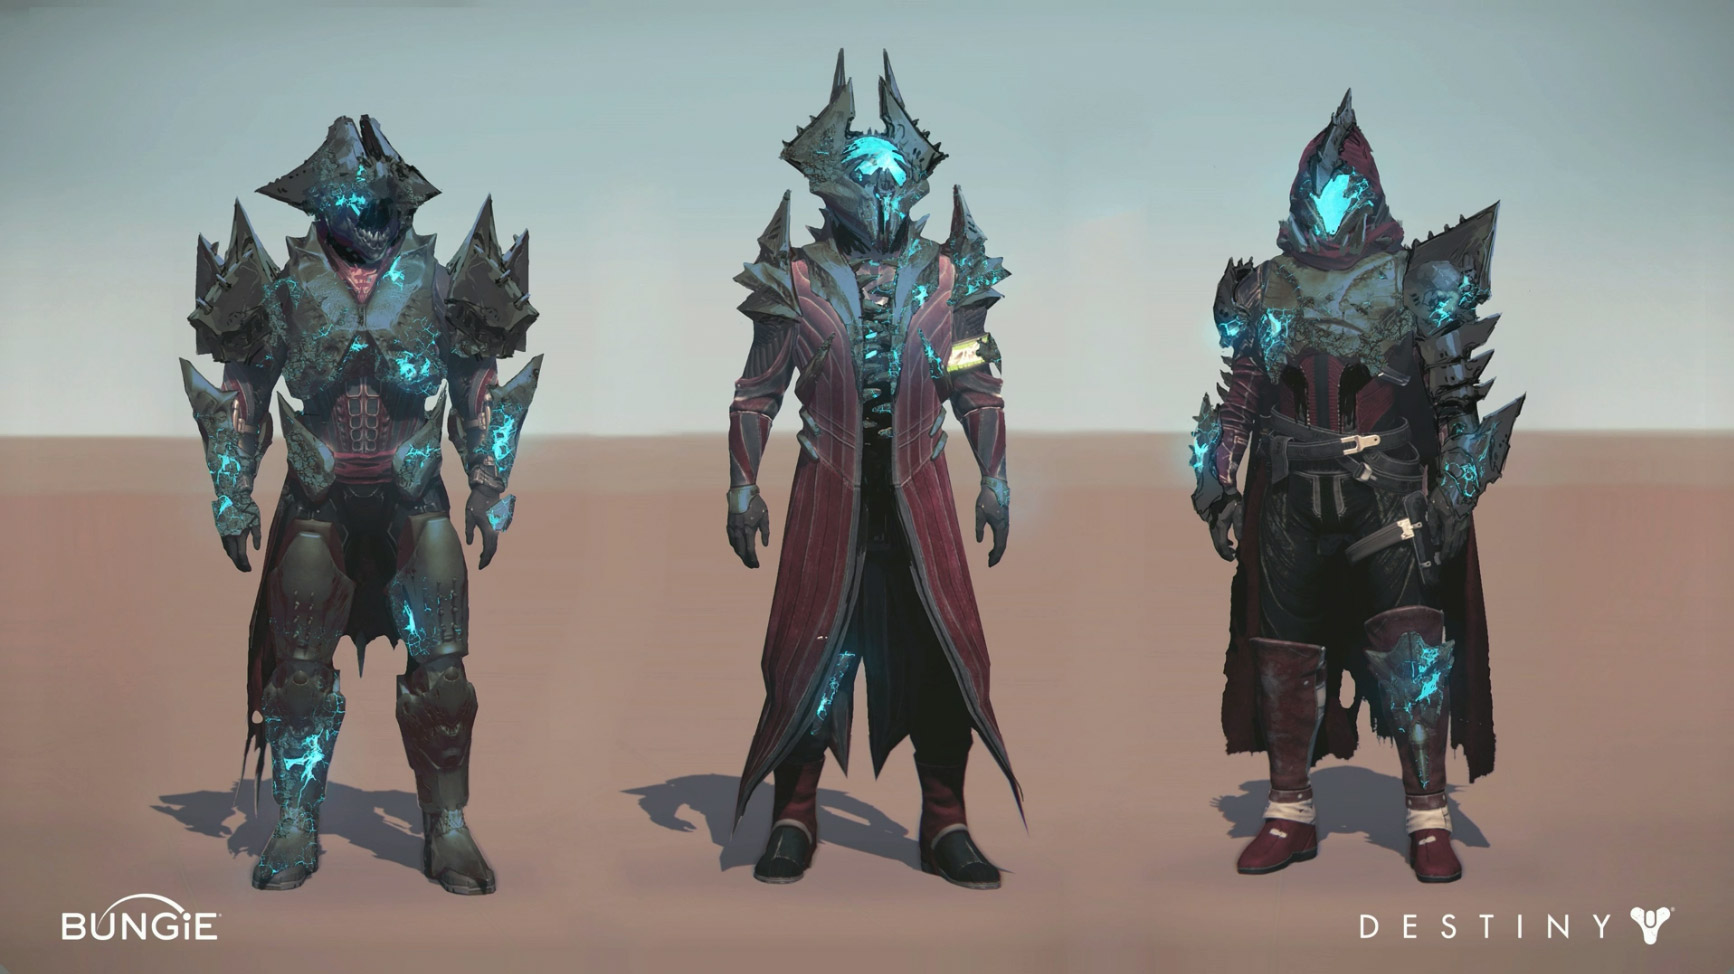 53ddedc9d47 Here s the new raid gear you can get in Destiny Age of Triumph - Polygon